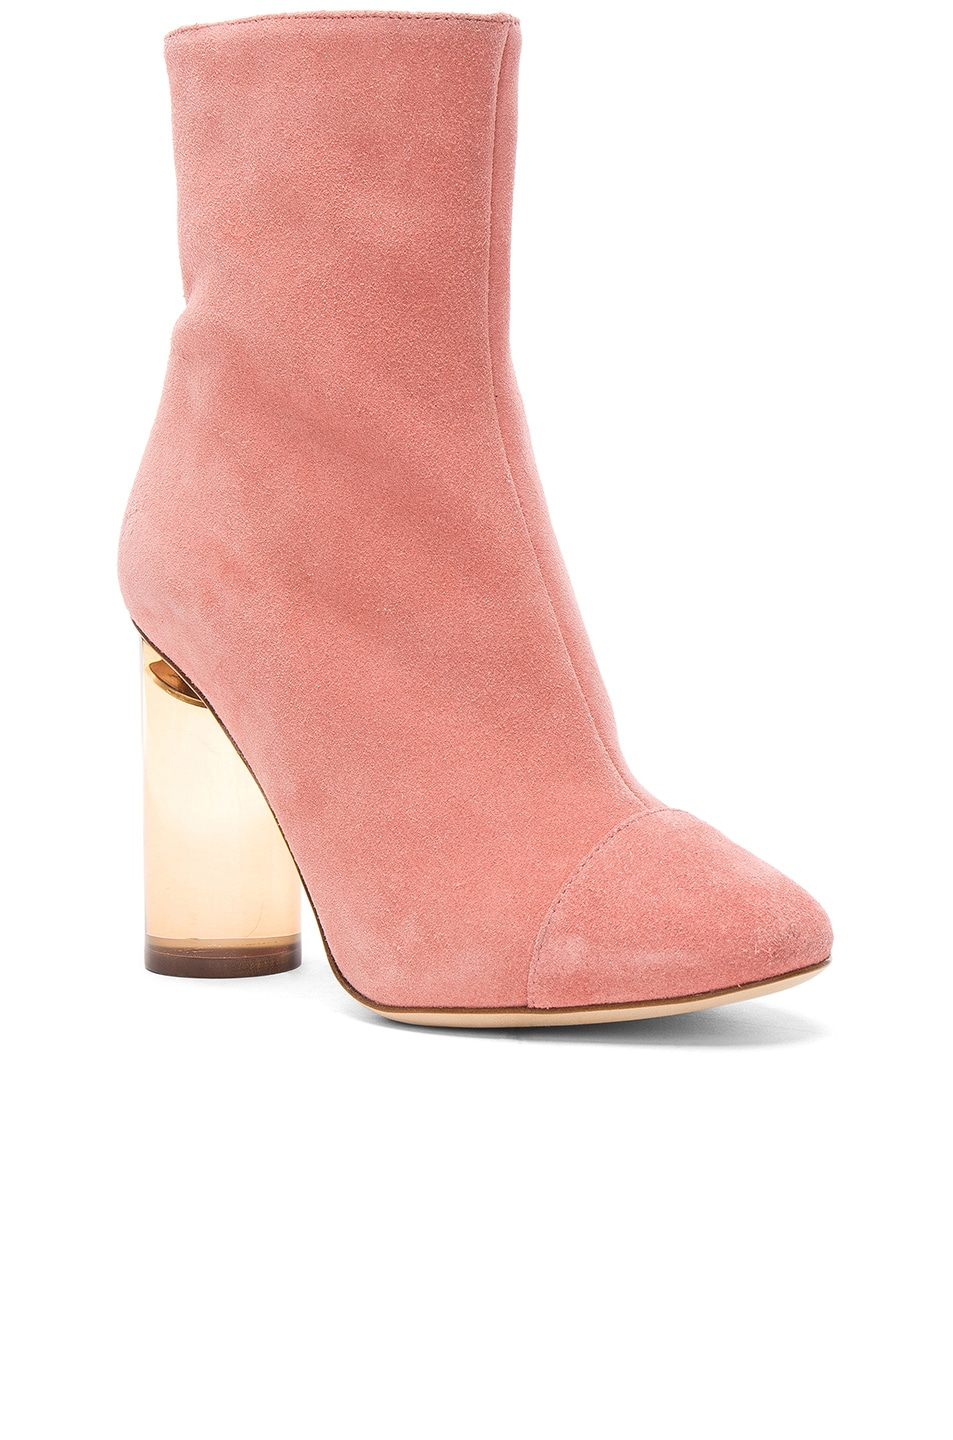 BROTHER VELLIES Suede Bianca Boots in . Q7MJTvYdt